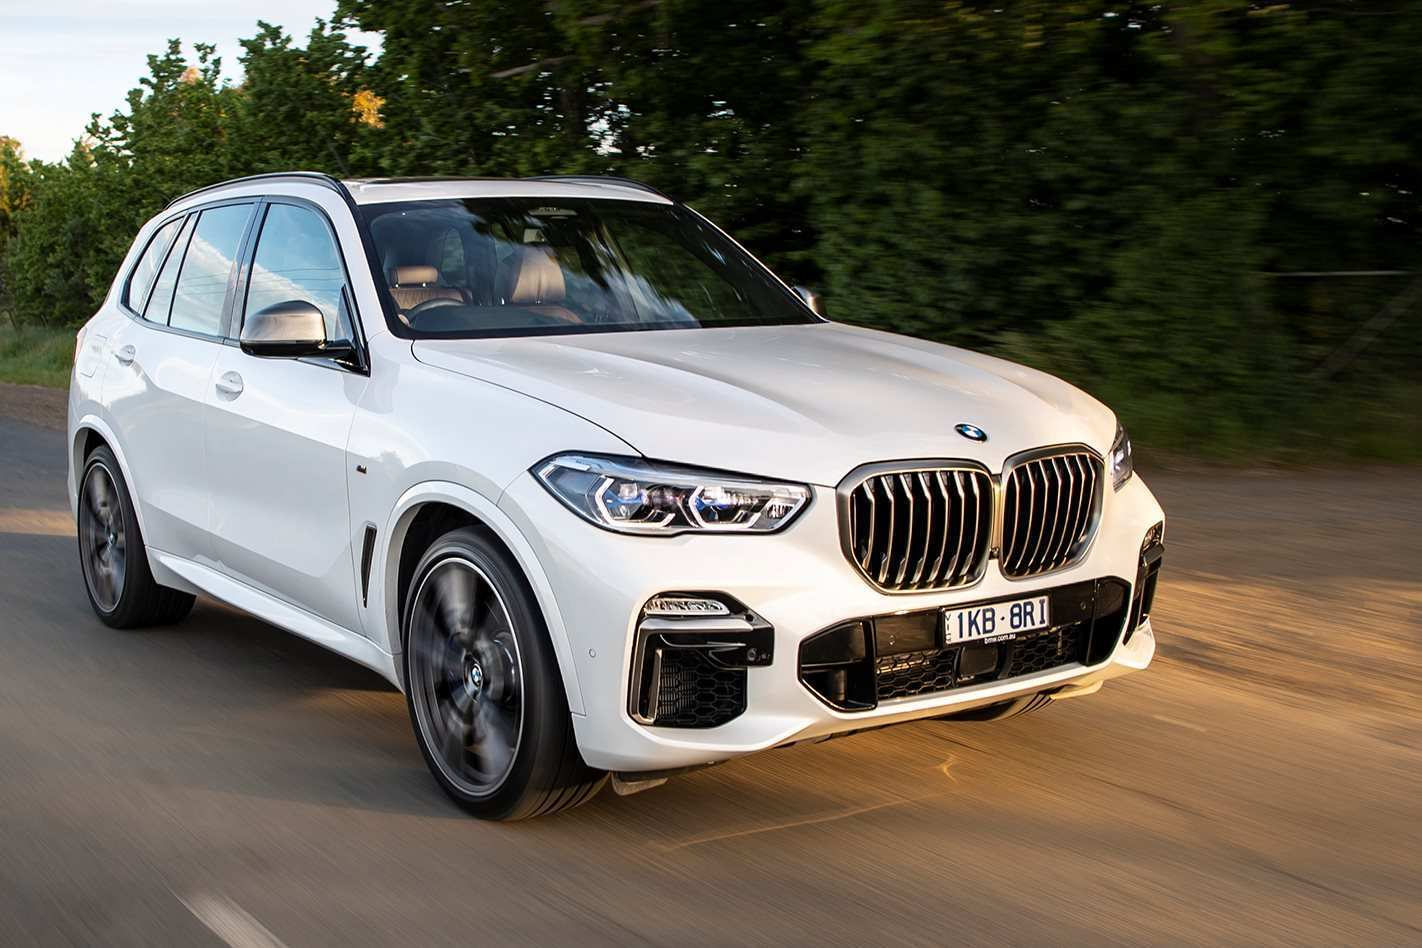 54 Great Review Of 2019 Bmw X5 Performance Images by Review Of 2019 Bmw X5 Performance